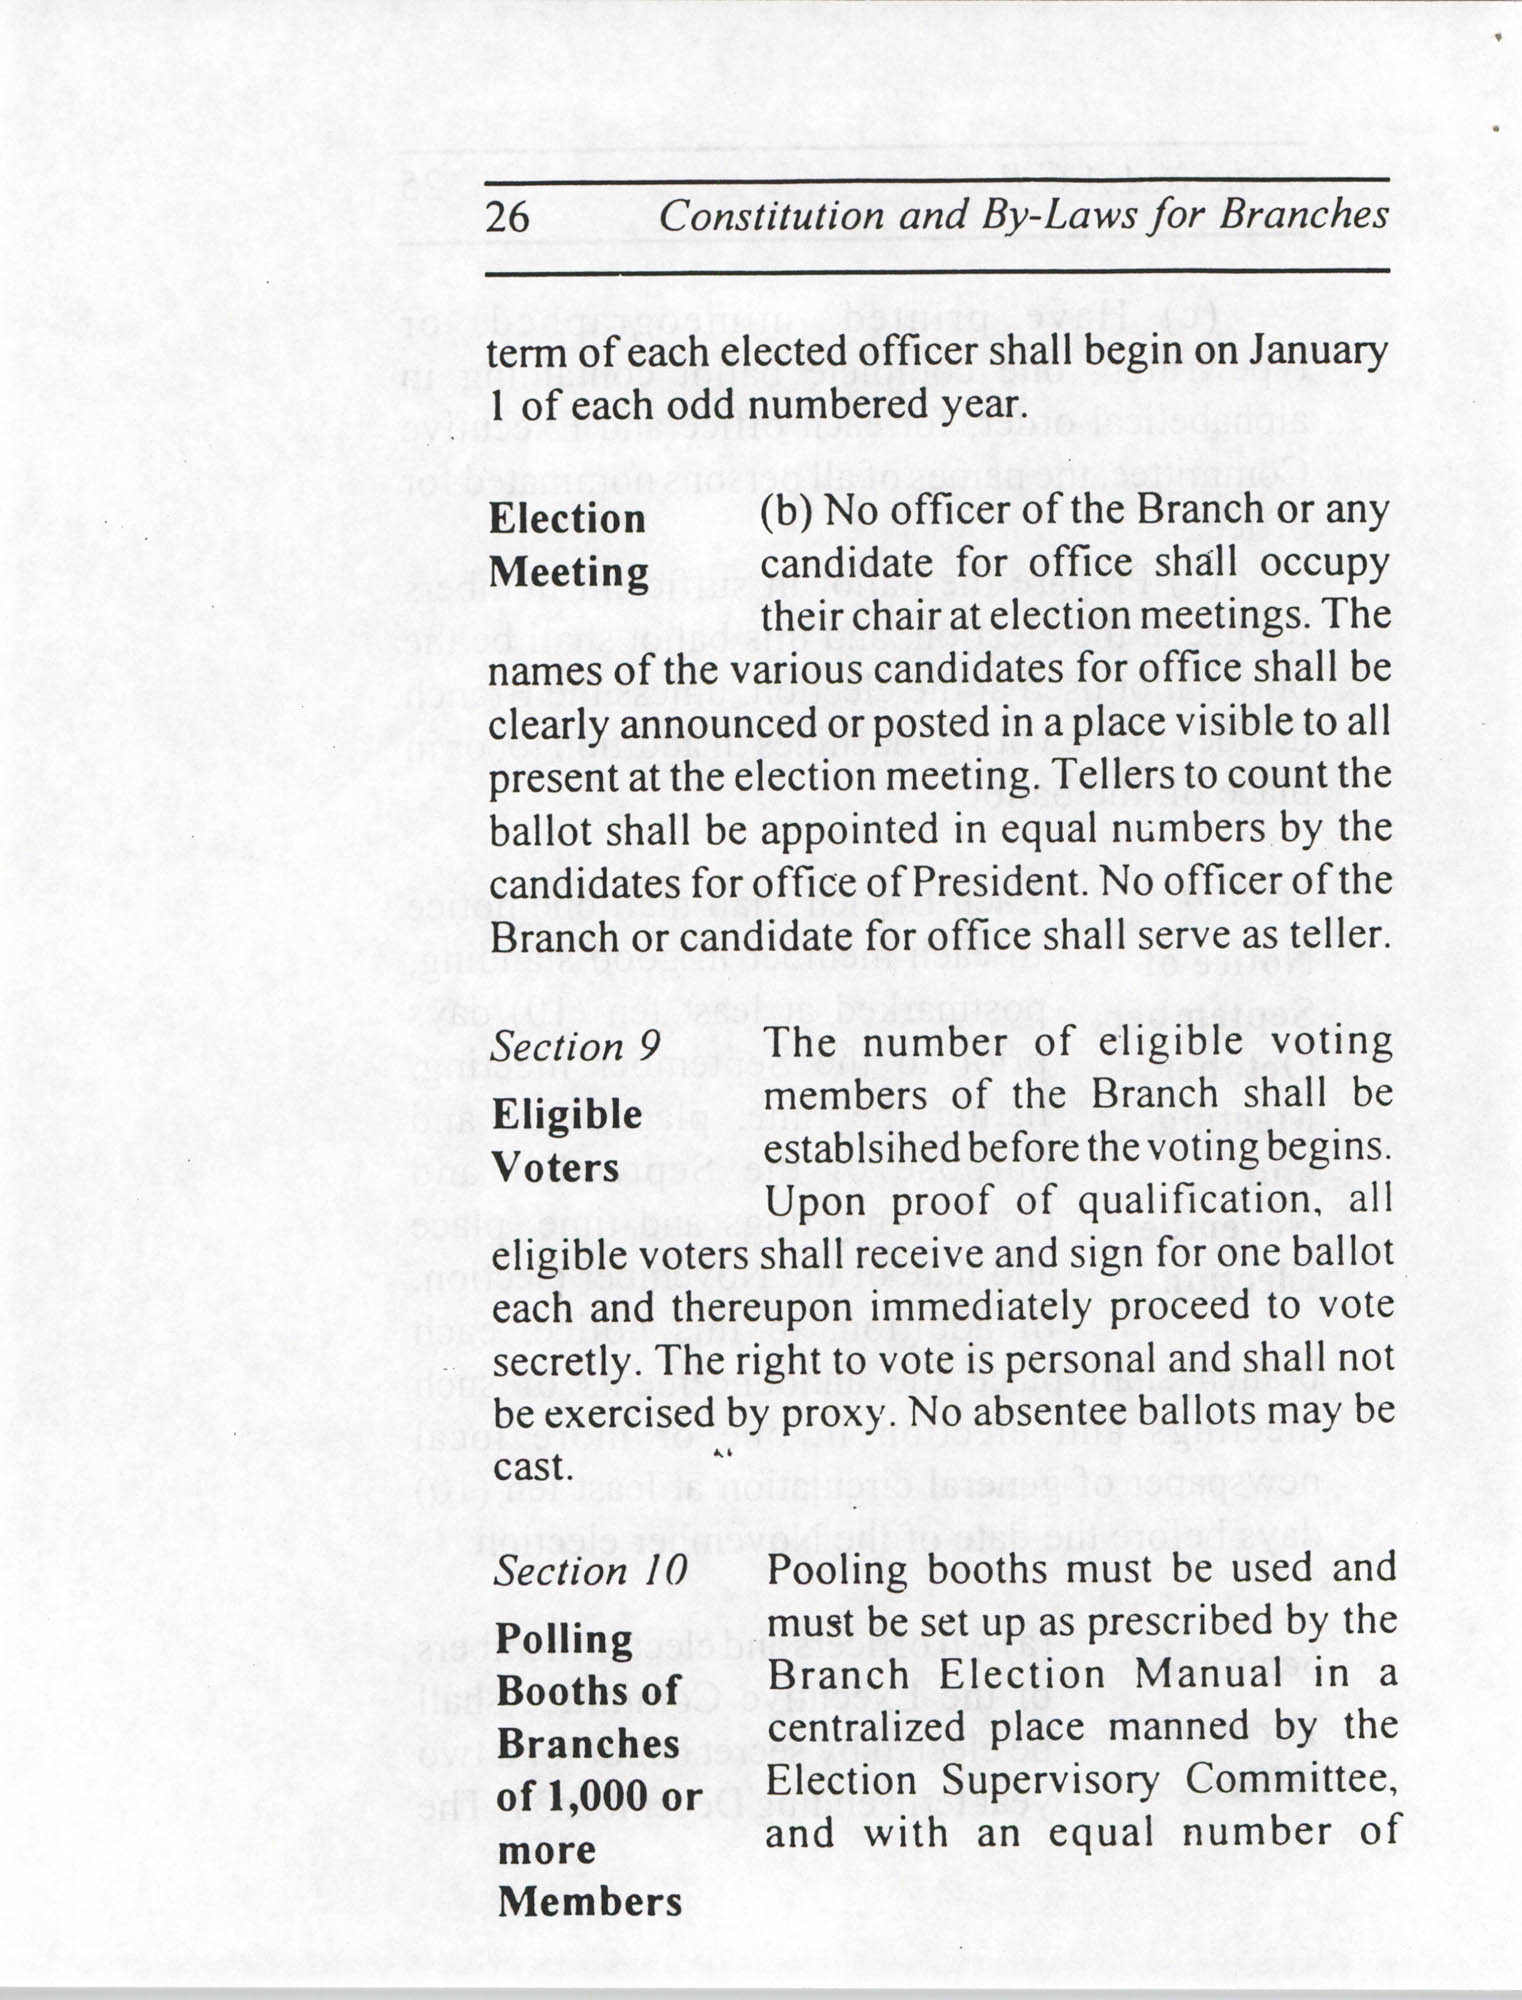 Constitution and By-Laws for Branches of the NAACP, July 1994, Page 26